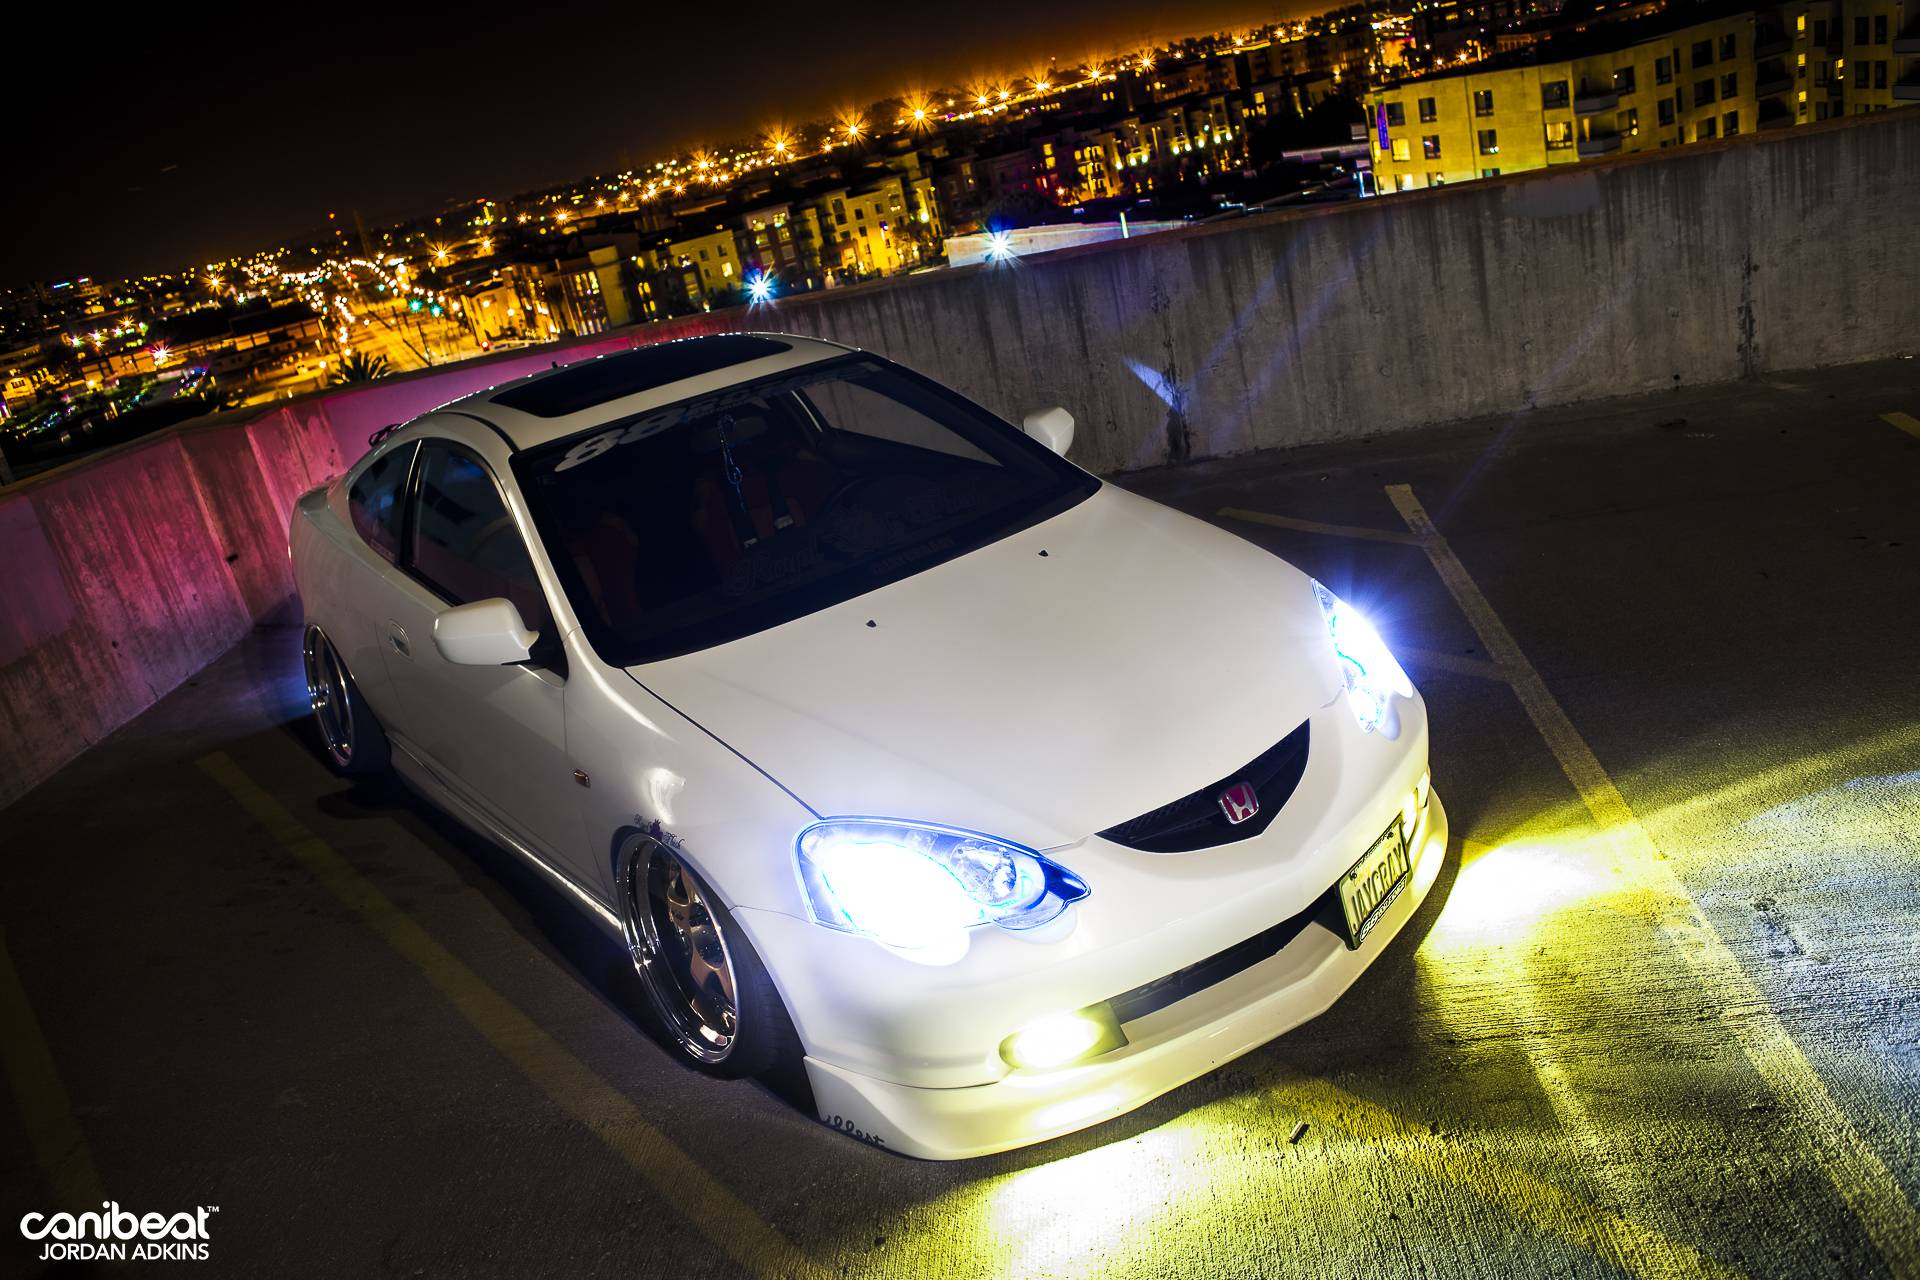 Image For > Acura Rsx Jdm Wallpapers